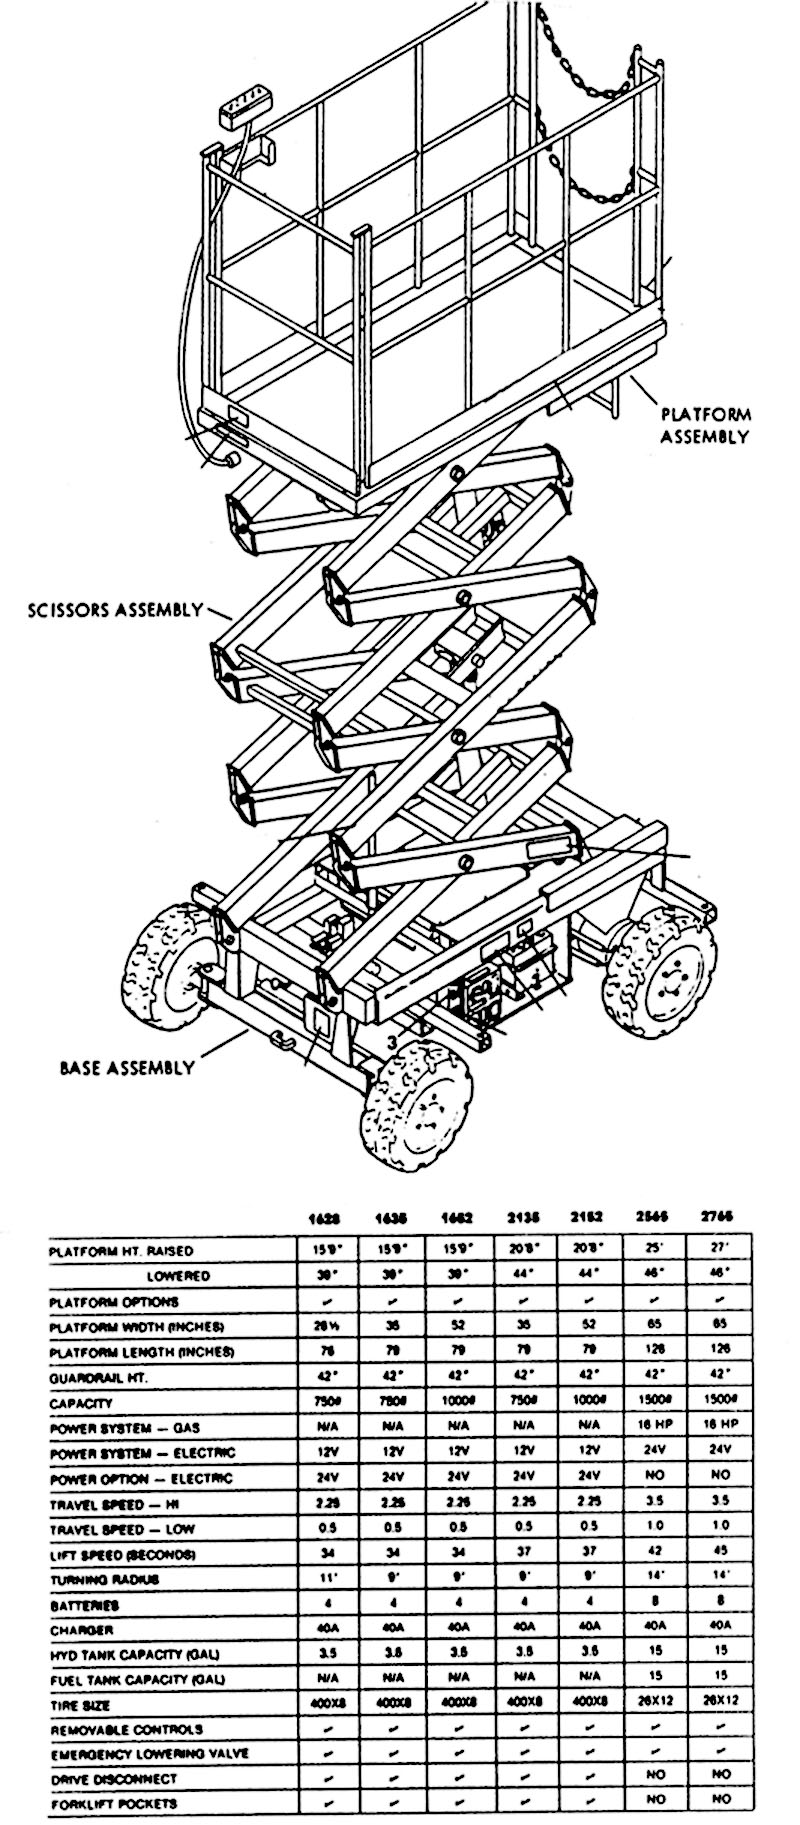 hight resolution of wiring diagram for skyjack scissor lift skyjack 3219